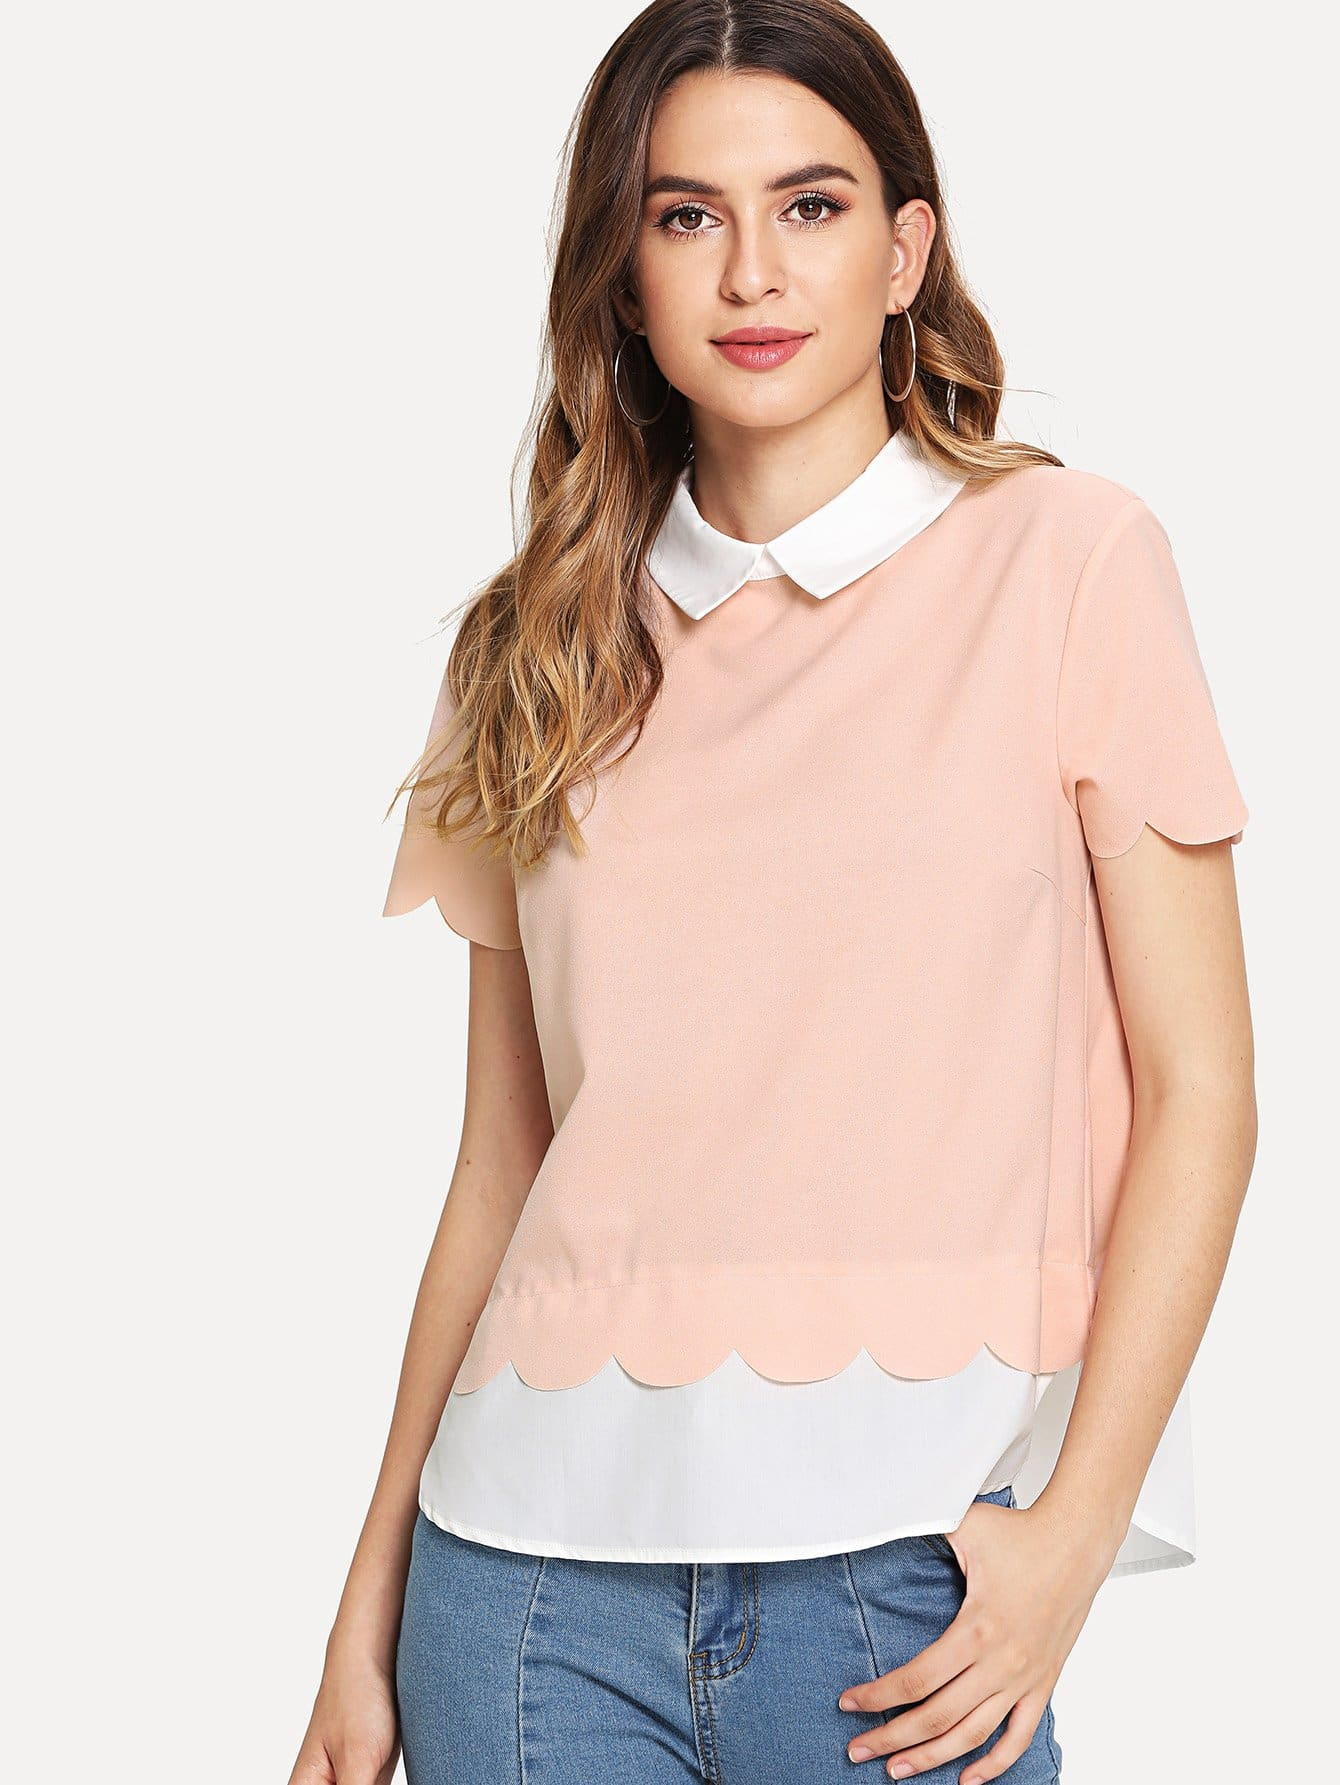 Scalloped Trim 2 in 1 Blouse scalloped lace trim bardot blouse